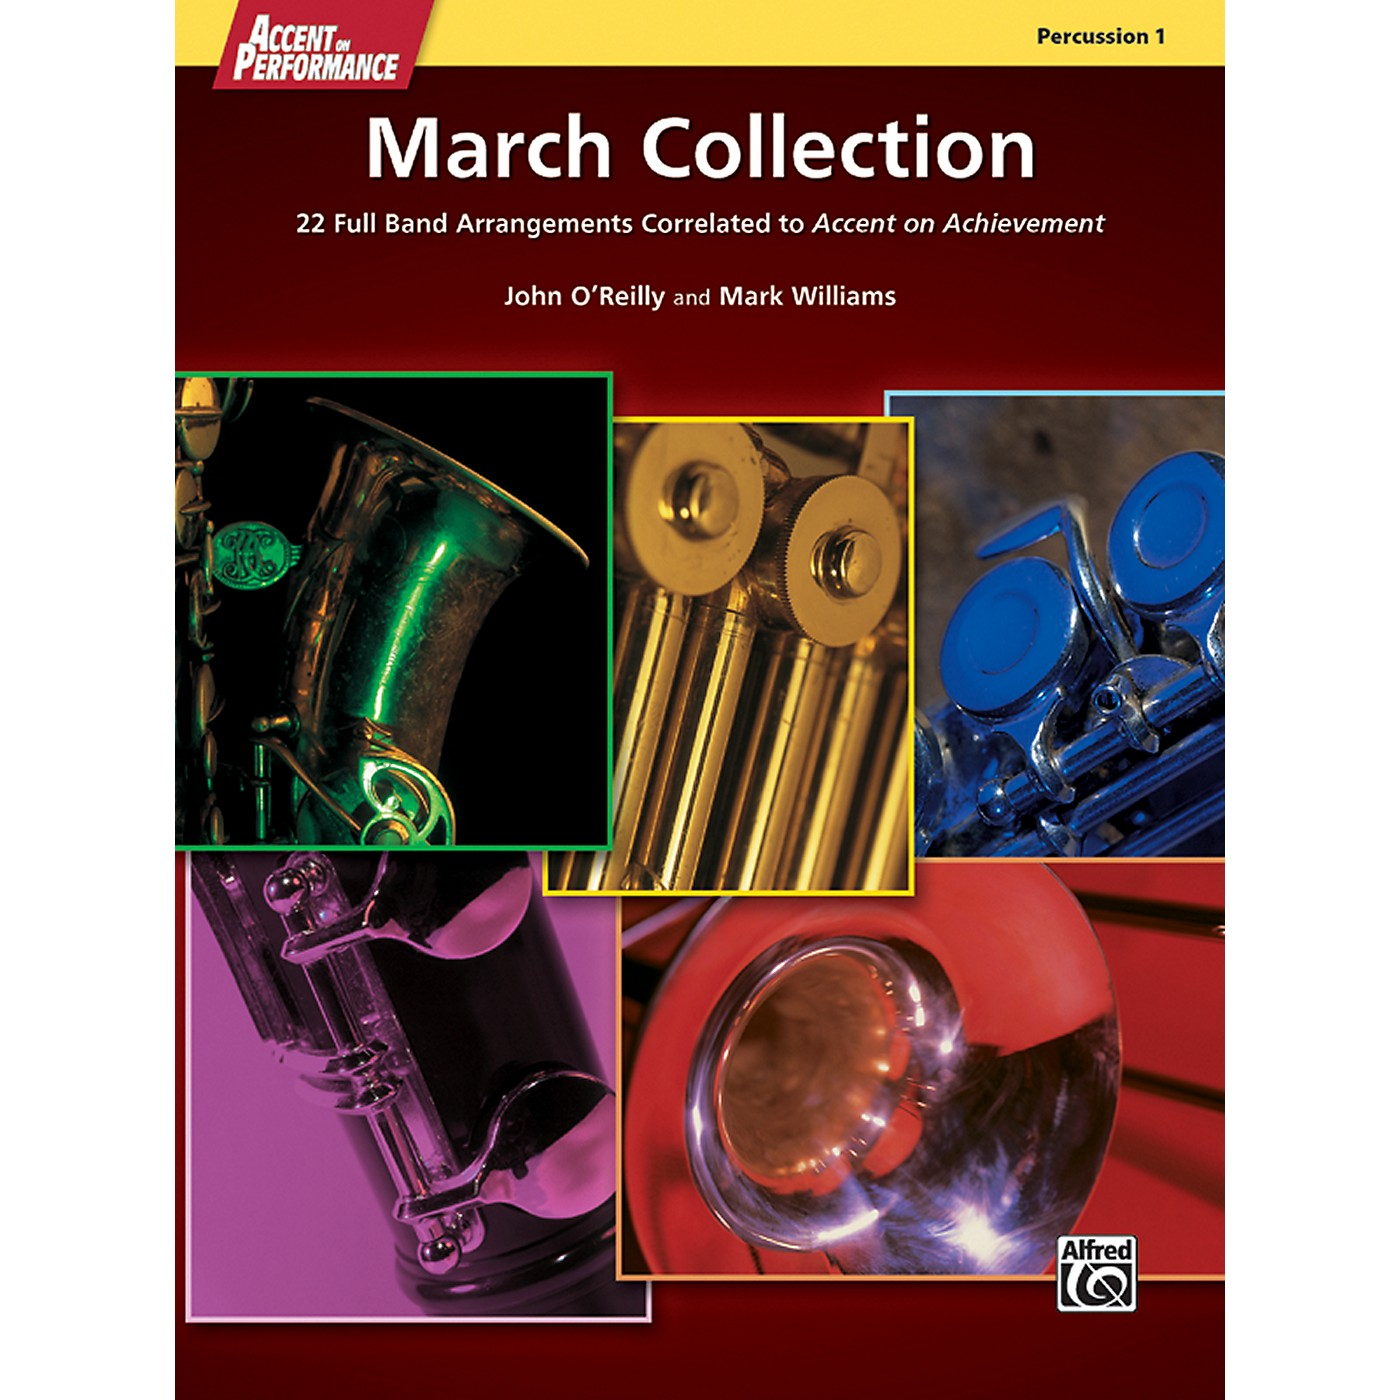 Alfred Accent on Performance March Collection Percussion 1 Book thumbnail